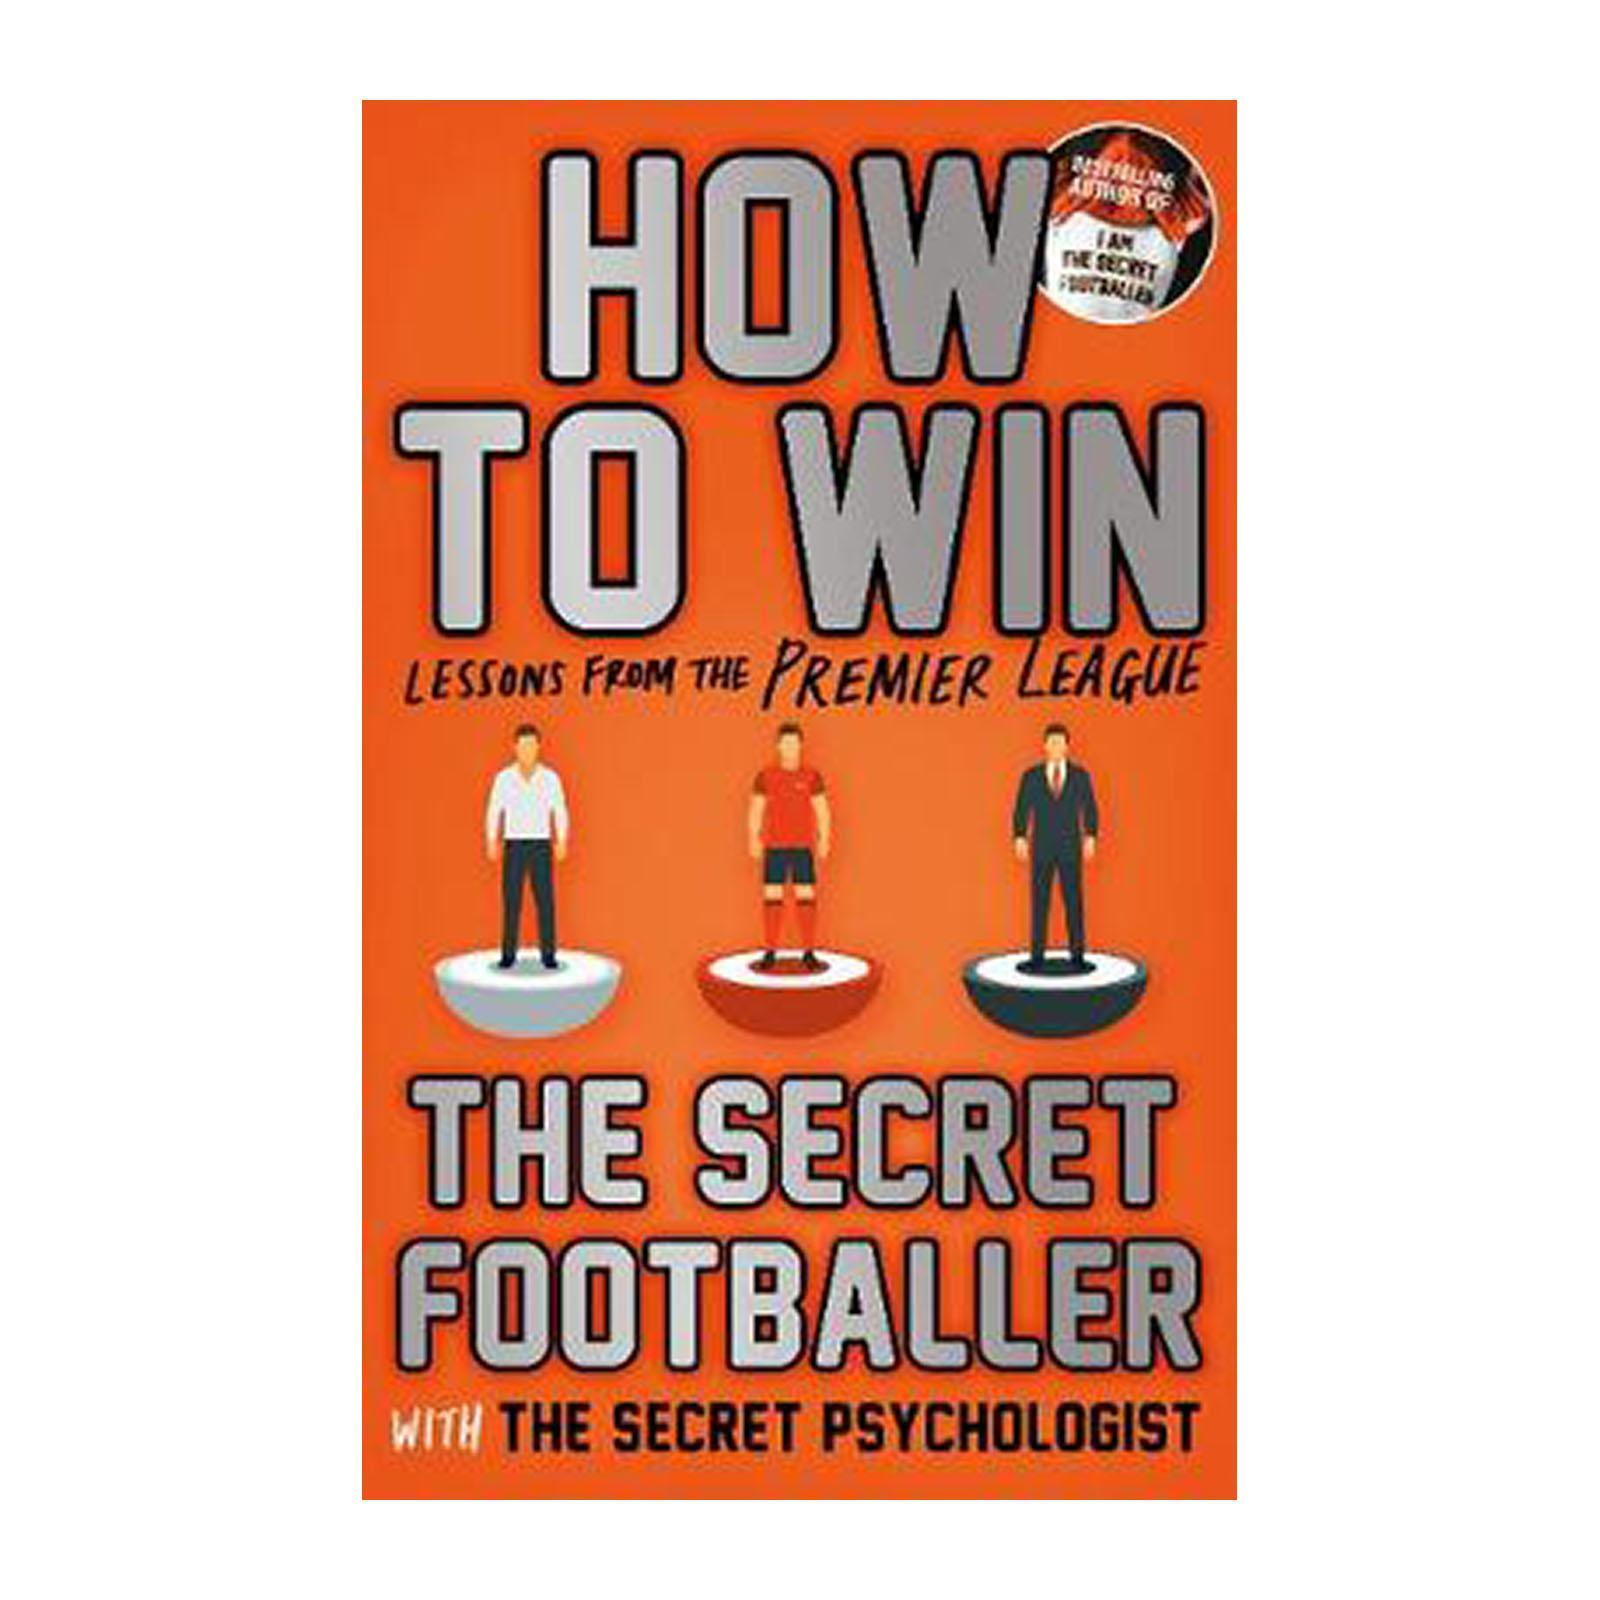 How To Win: Lessons From The Premier League (Paperback)